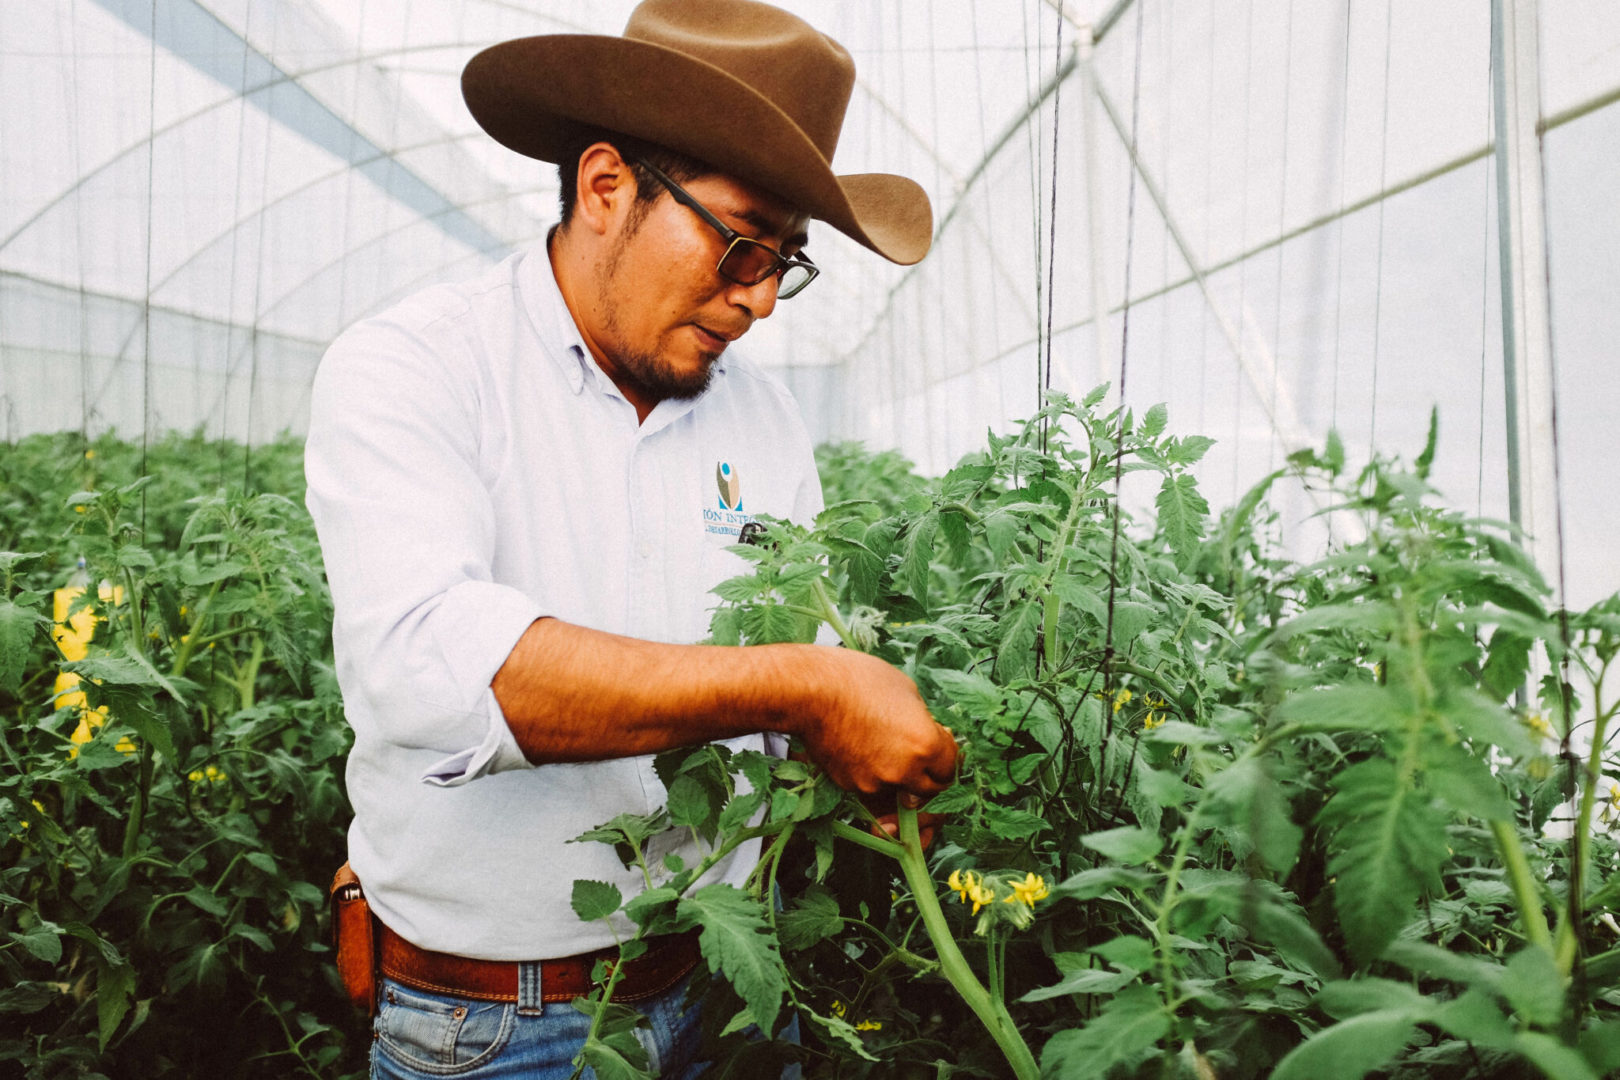 Jorge is an expert agronomist on staff with Plant With Purpose in Mexico. His mission is to teach others sustainable agriculture.